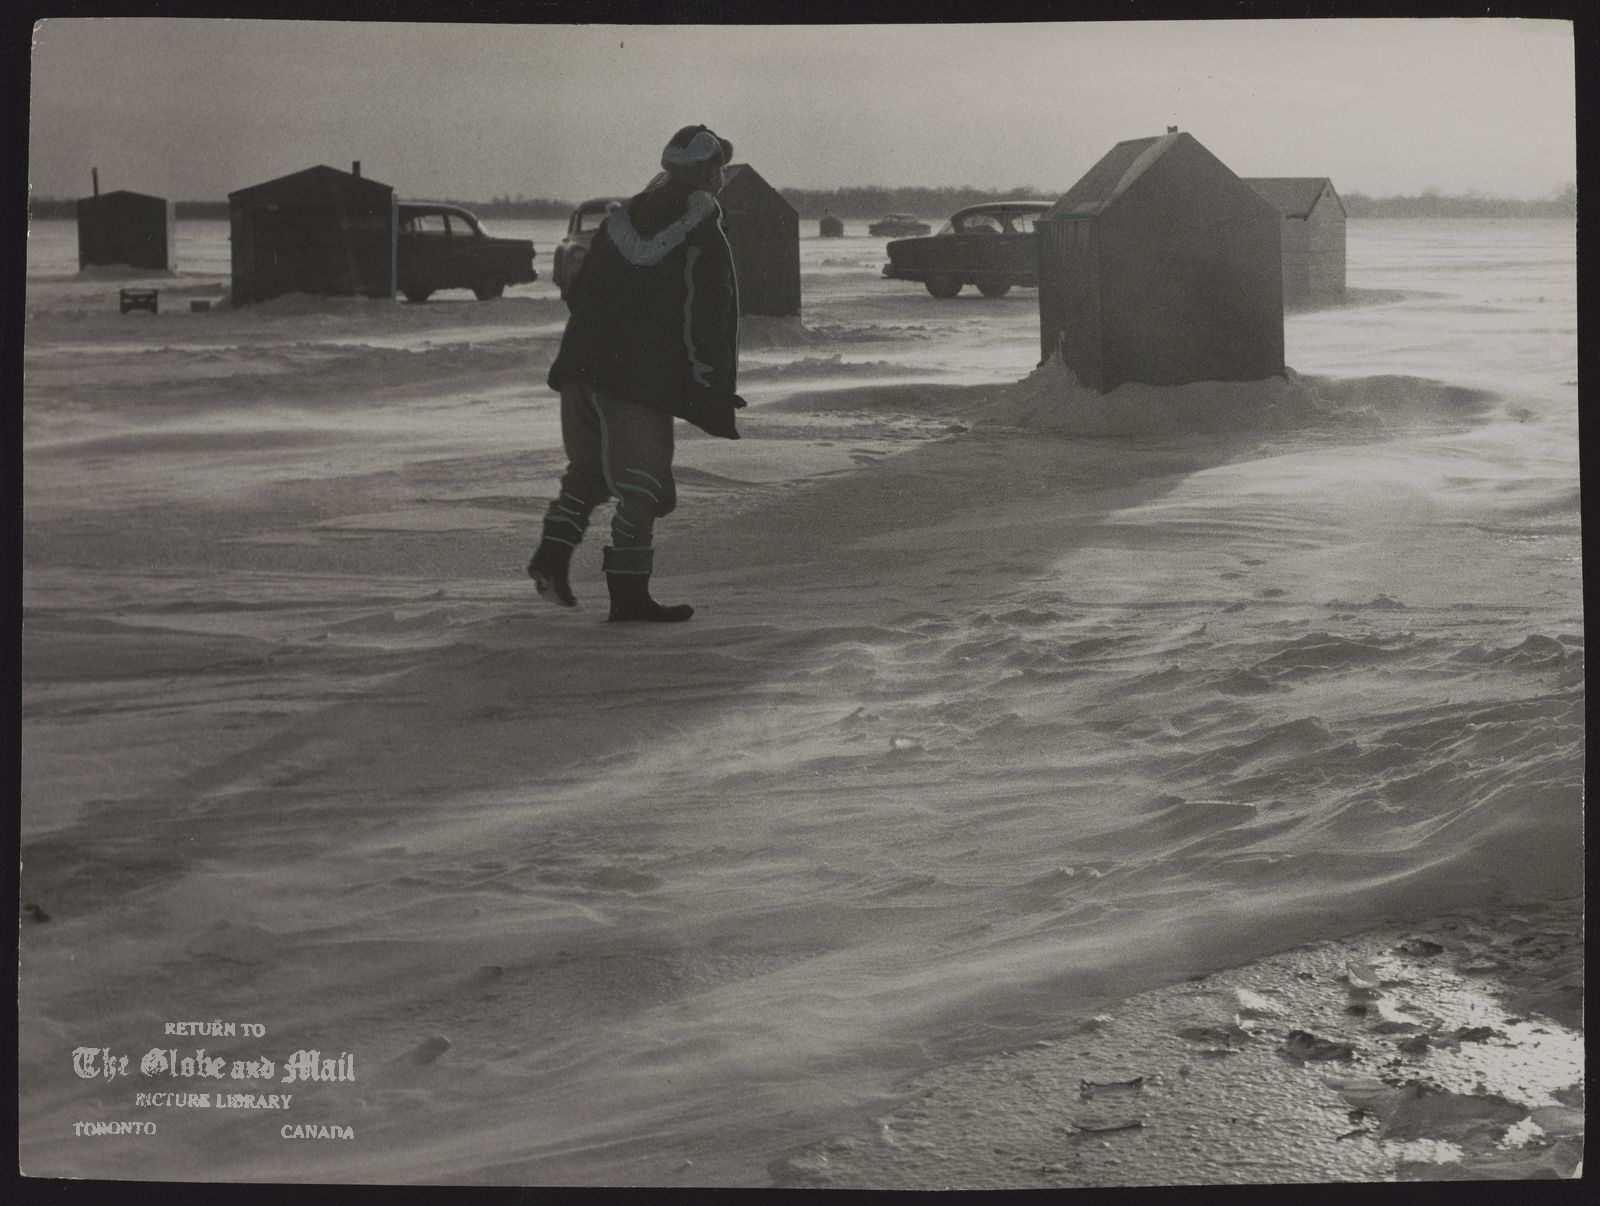 The notes transcribed from the back of this photograph are as follows: Ice Fishing Fisherman wastes no times crossing wind-swept ice from his car to oil heated cabin. It's cozy inside and fish dinner's free on lake Simcoe.